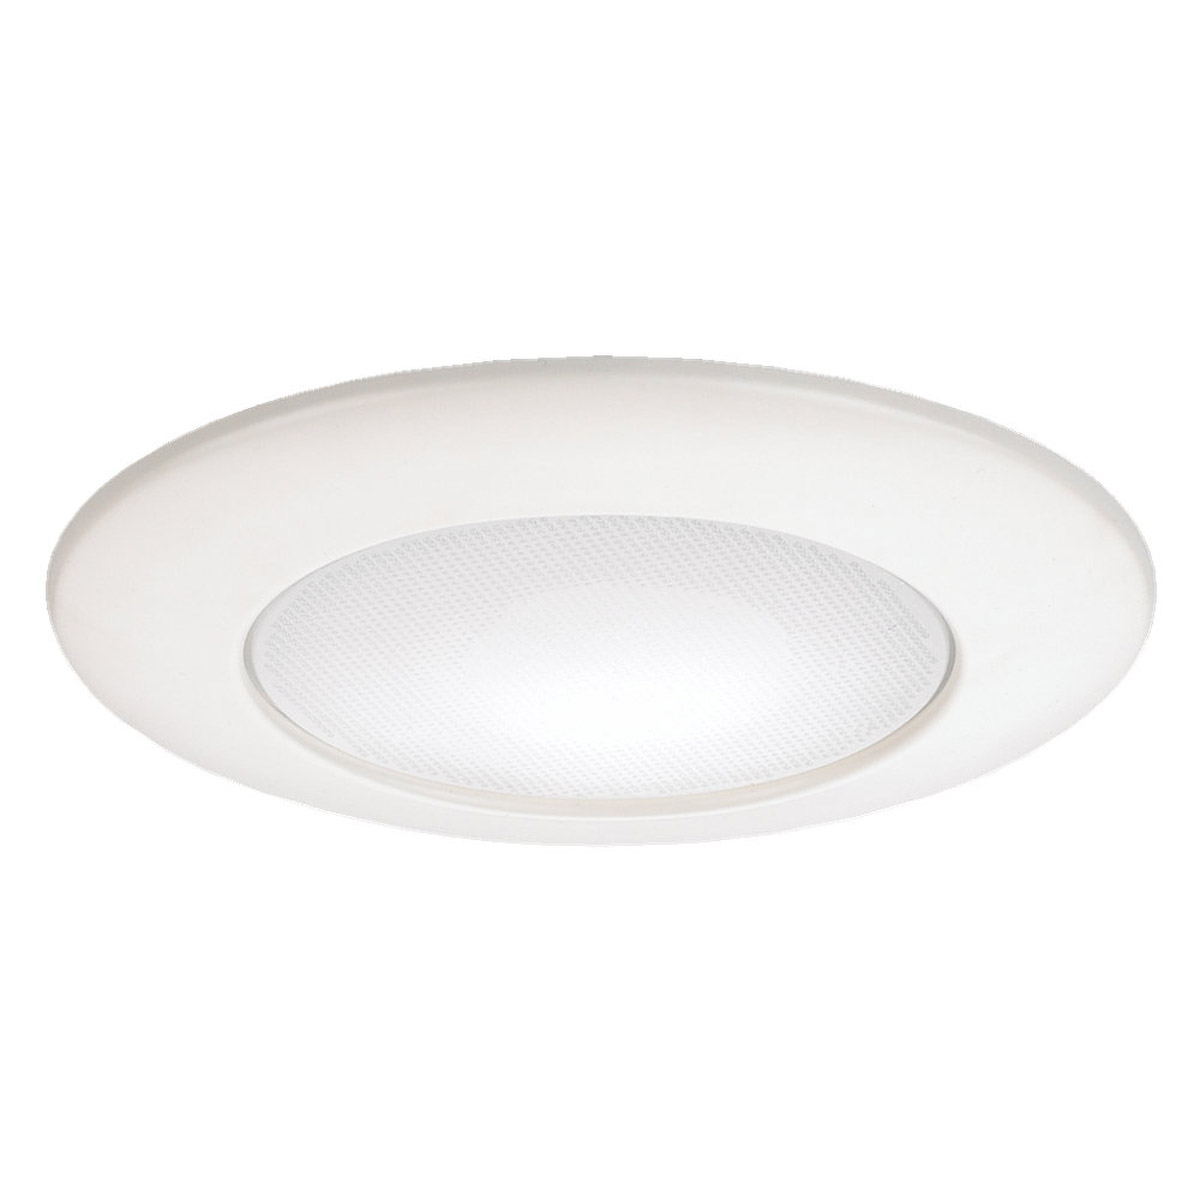 Sea Gull Lighting Signature Recessed Trim Only in White 11235AT-15